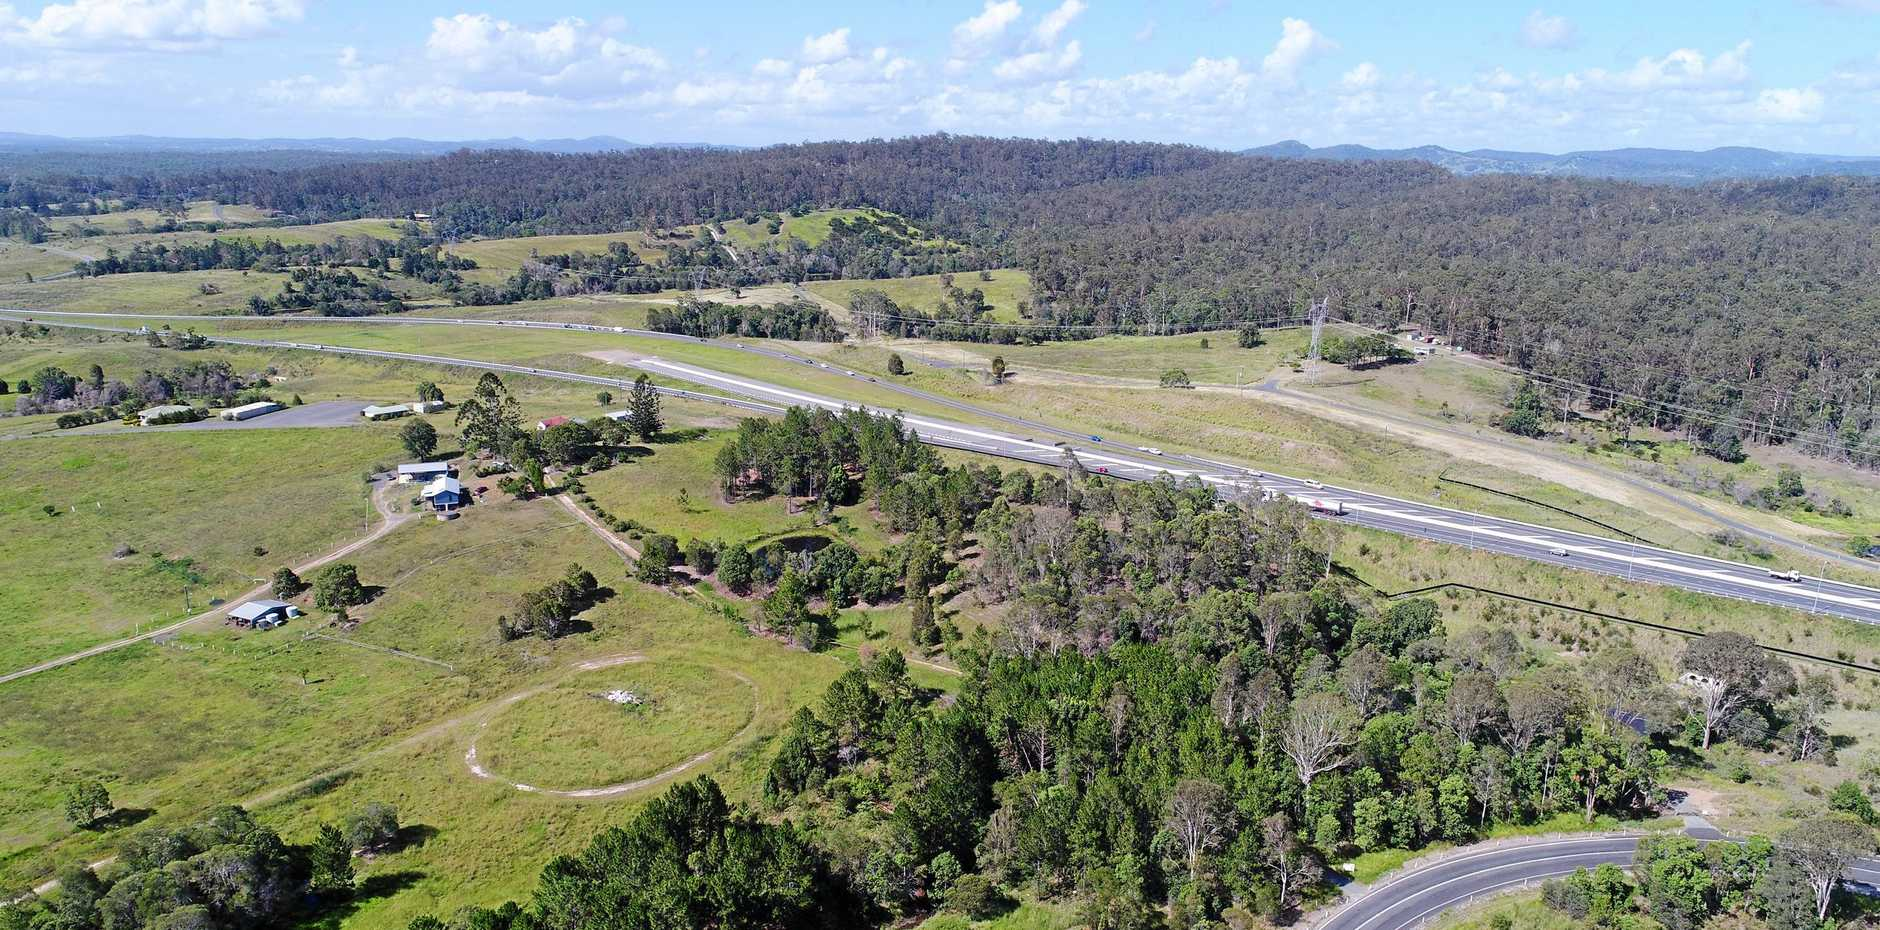 NEXT STEP: The next step in the Bruce Highway upgrade past Gympie is not the only major road project coming up for Gympie Region.